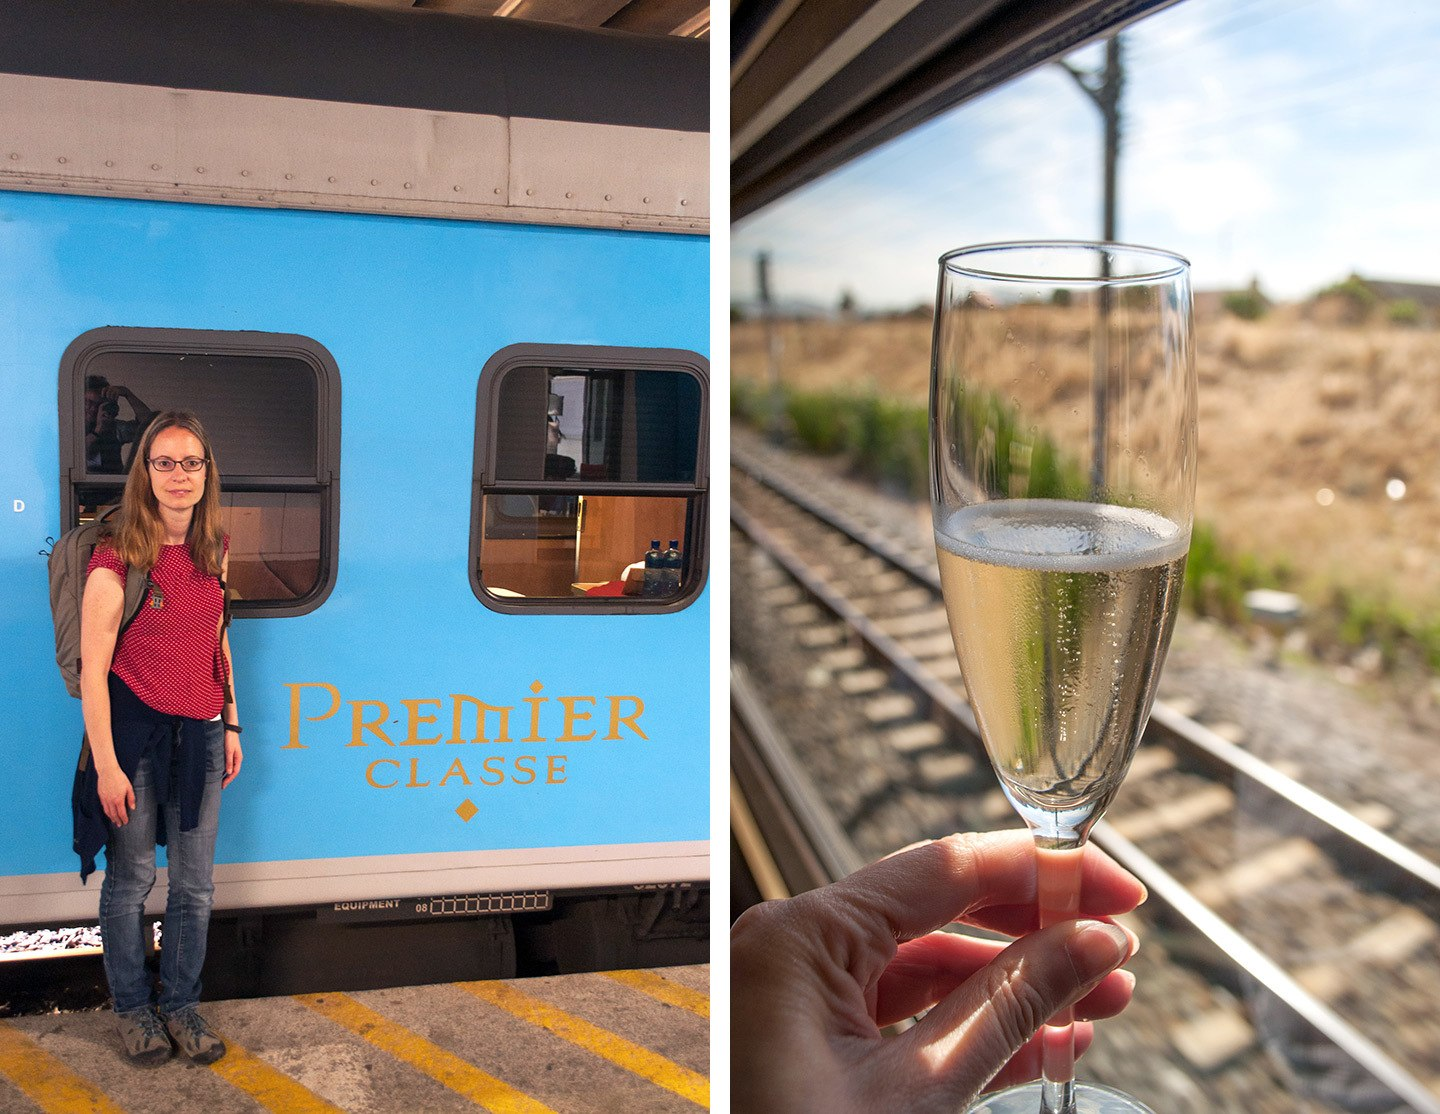 Premier Classe train South Africa